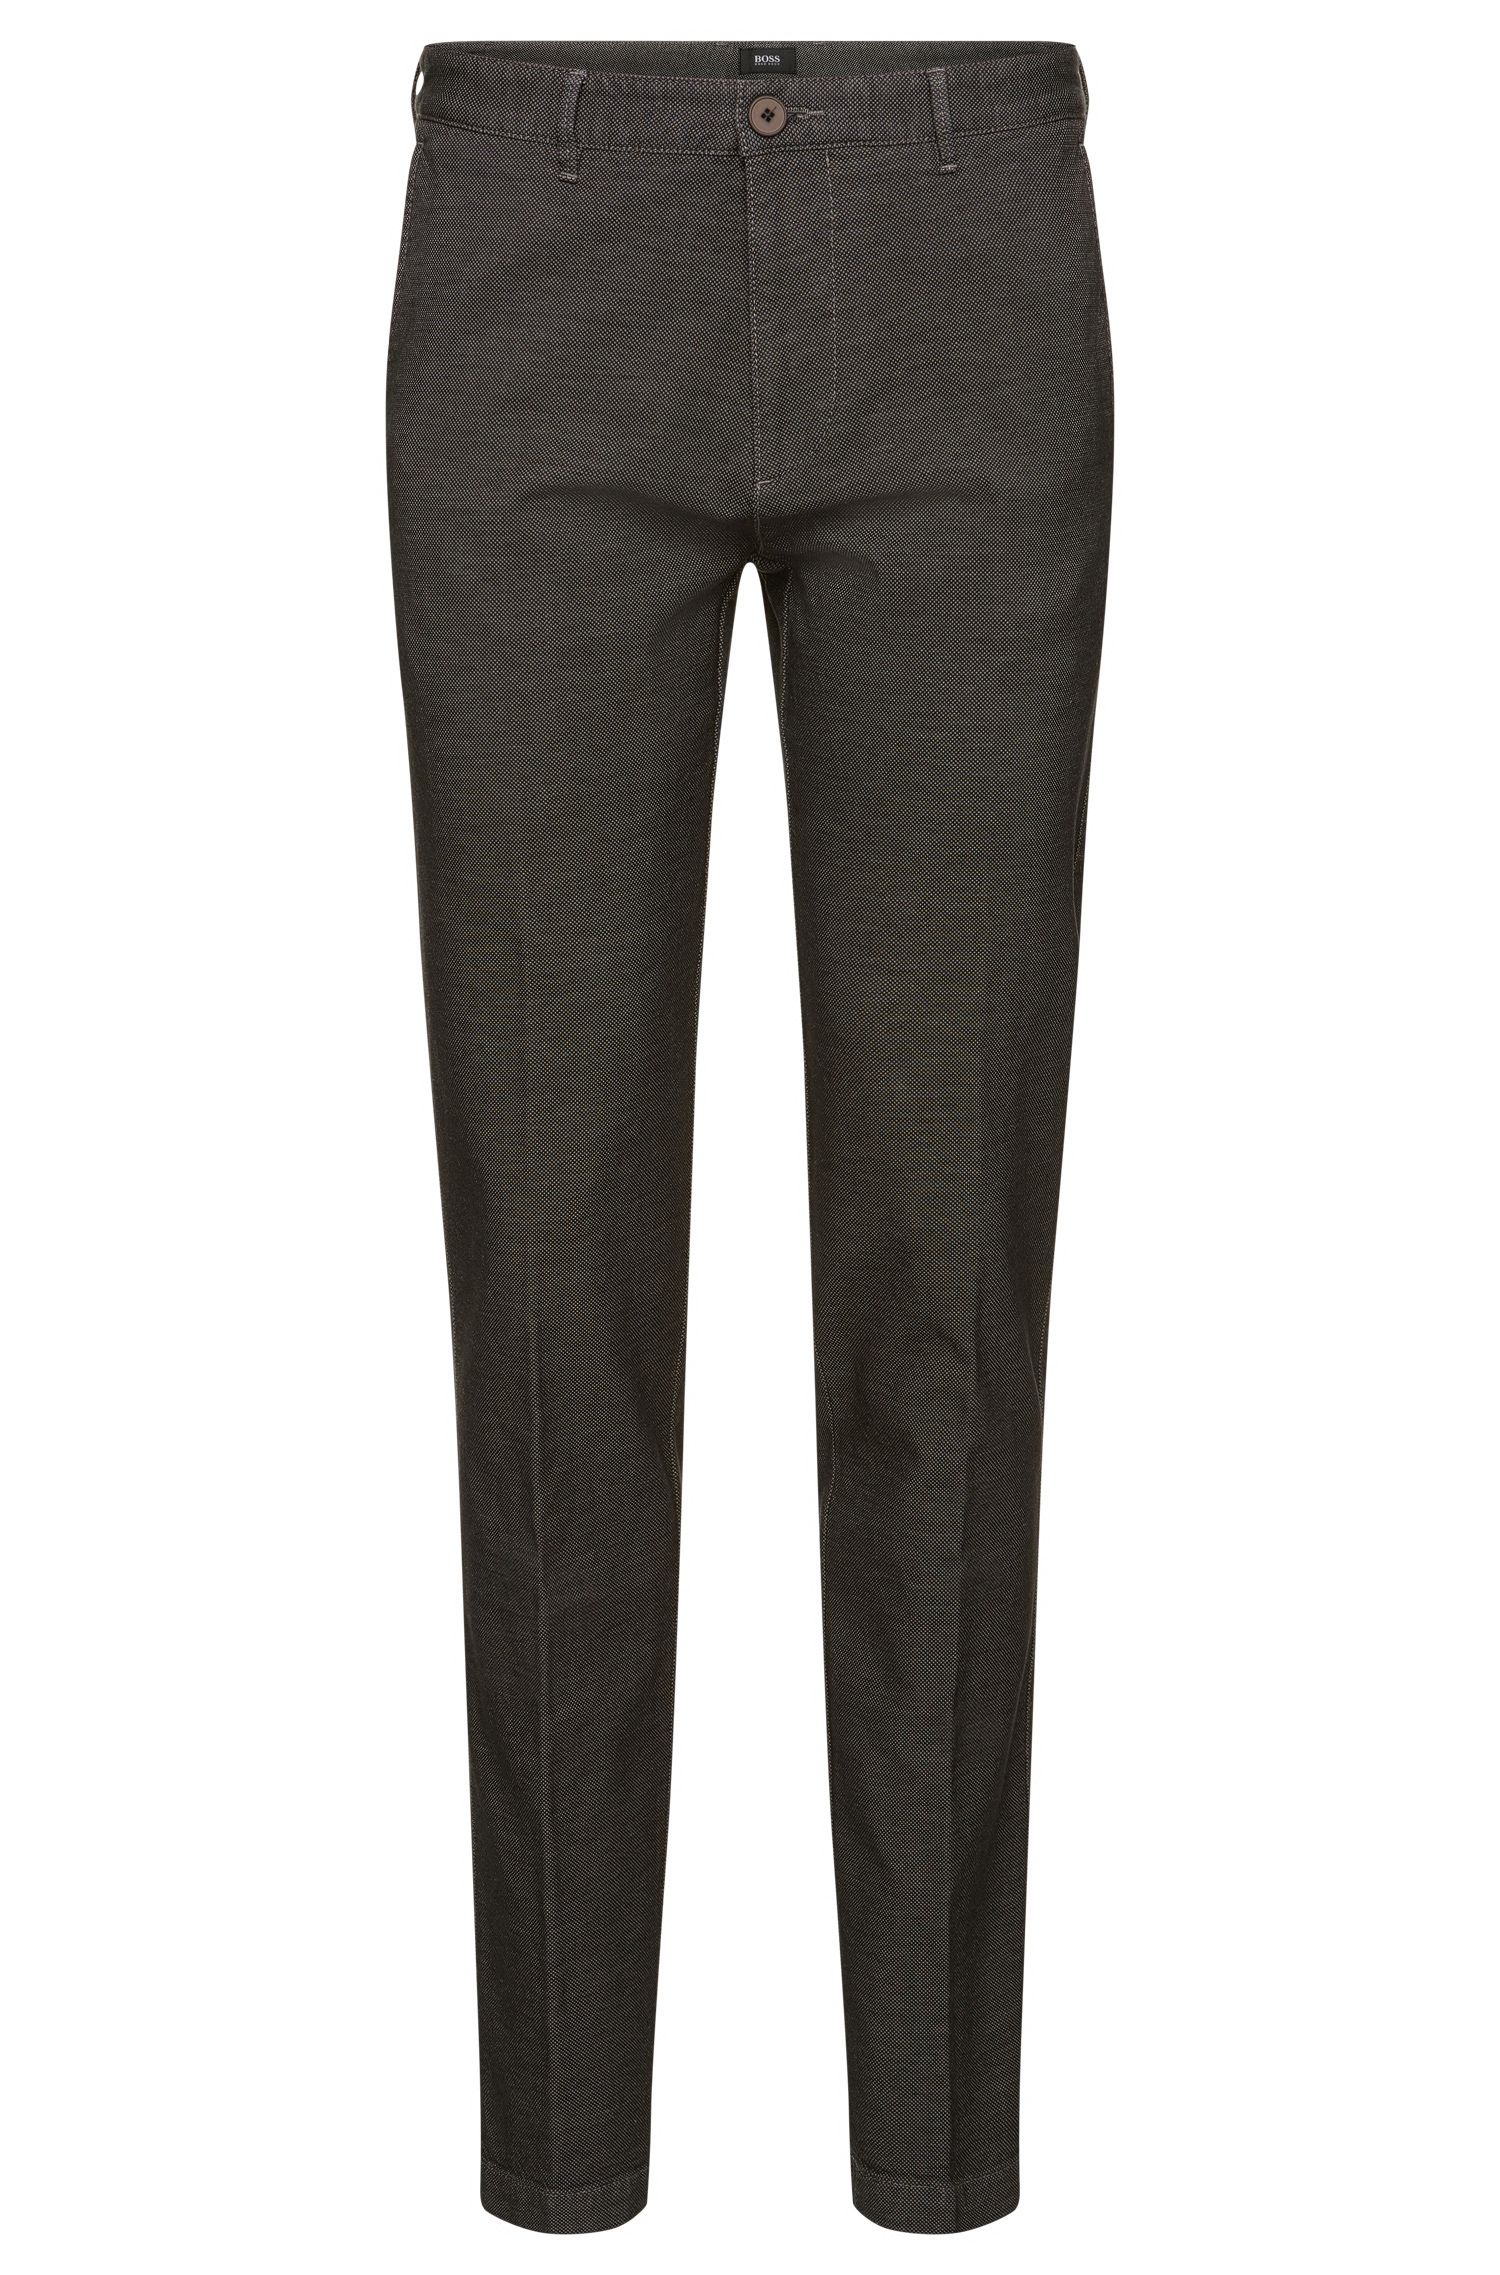 Crigan-W' | Regular Fit, Stretch Cotton Trousers